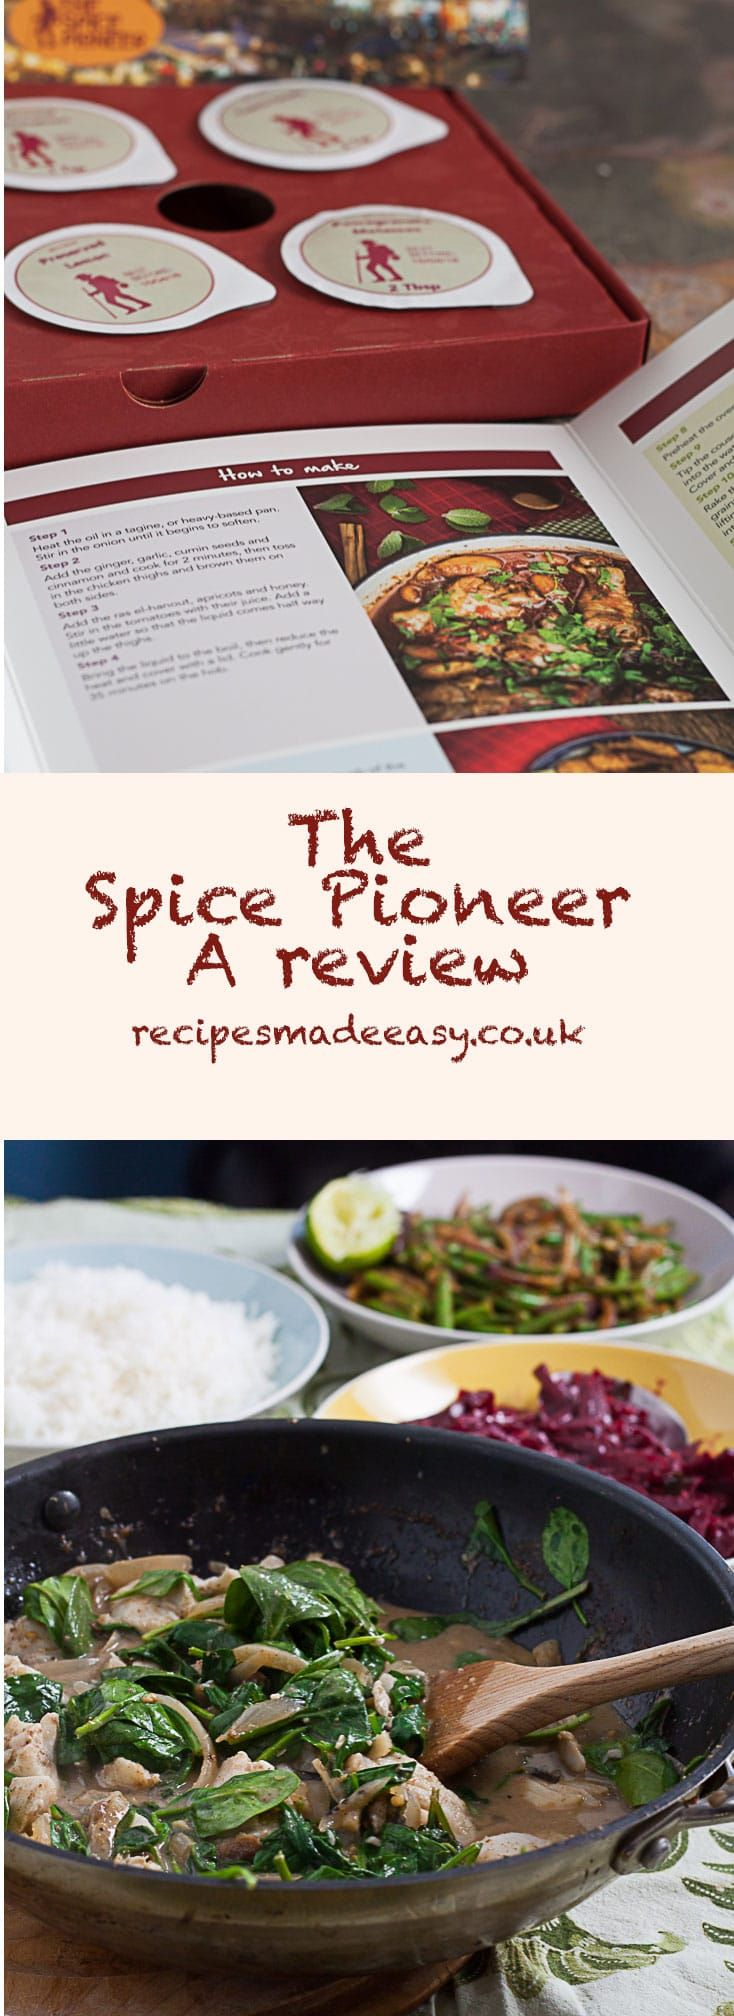 Do you like spicy food? Do you like cooking different dishes from around the world? If so then a subscription to The spice pioneer may be right up your street. All the spices you need to make a delicious meal for 4 delivered to your door.  #review #spicyfood #spices #spicepioneer #spicebox  via @jacdotbee